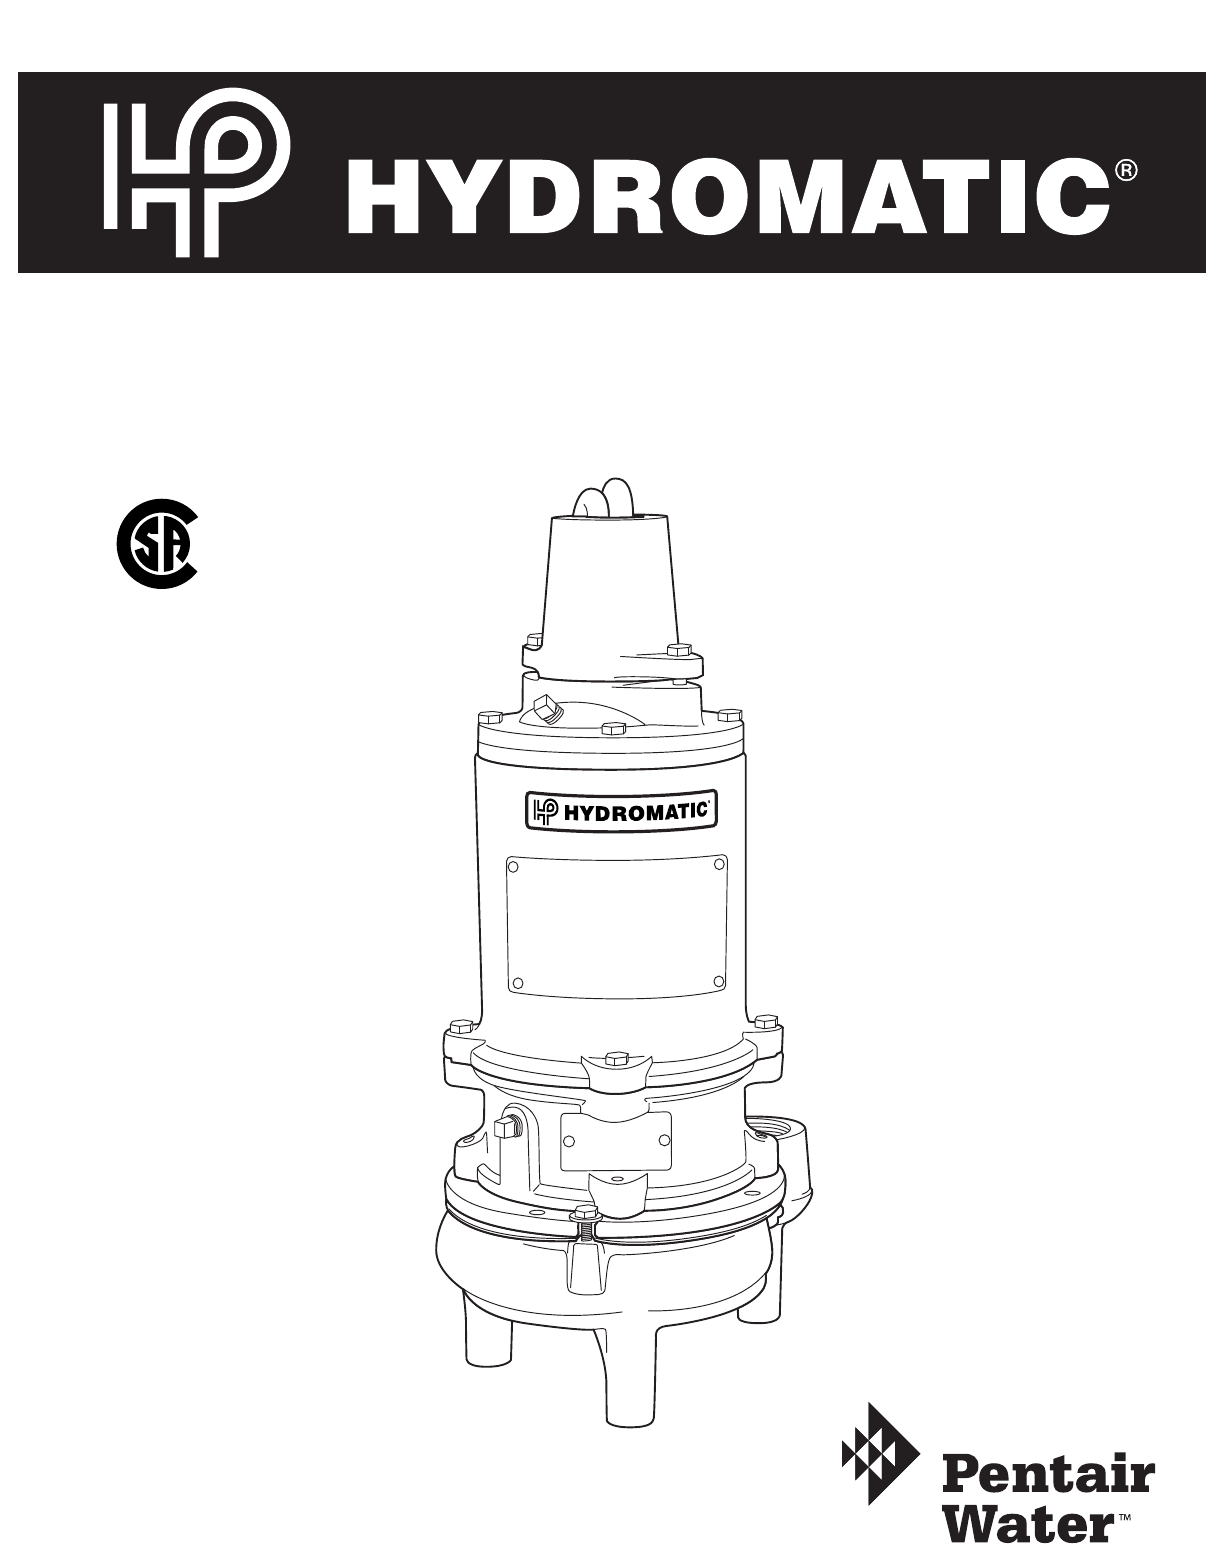 hydromatic pump wiring diagram wiring diagram load 139478 2 hydromatic spx50 owners manual w 03 415 user hydromatic pump wiring diagram